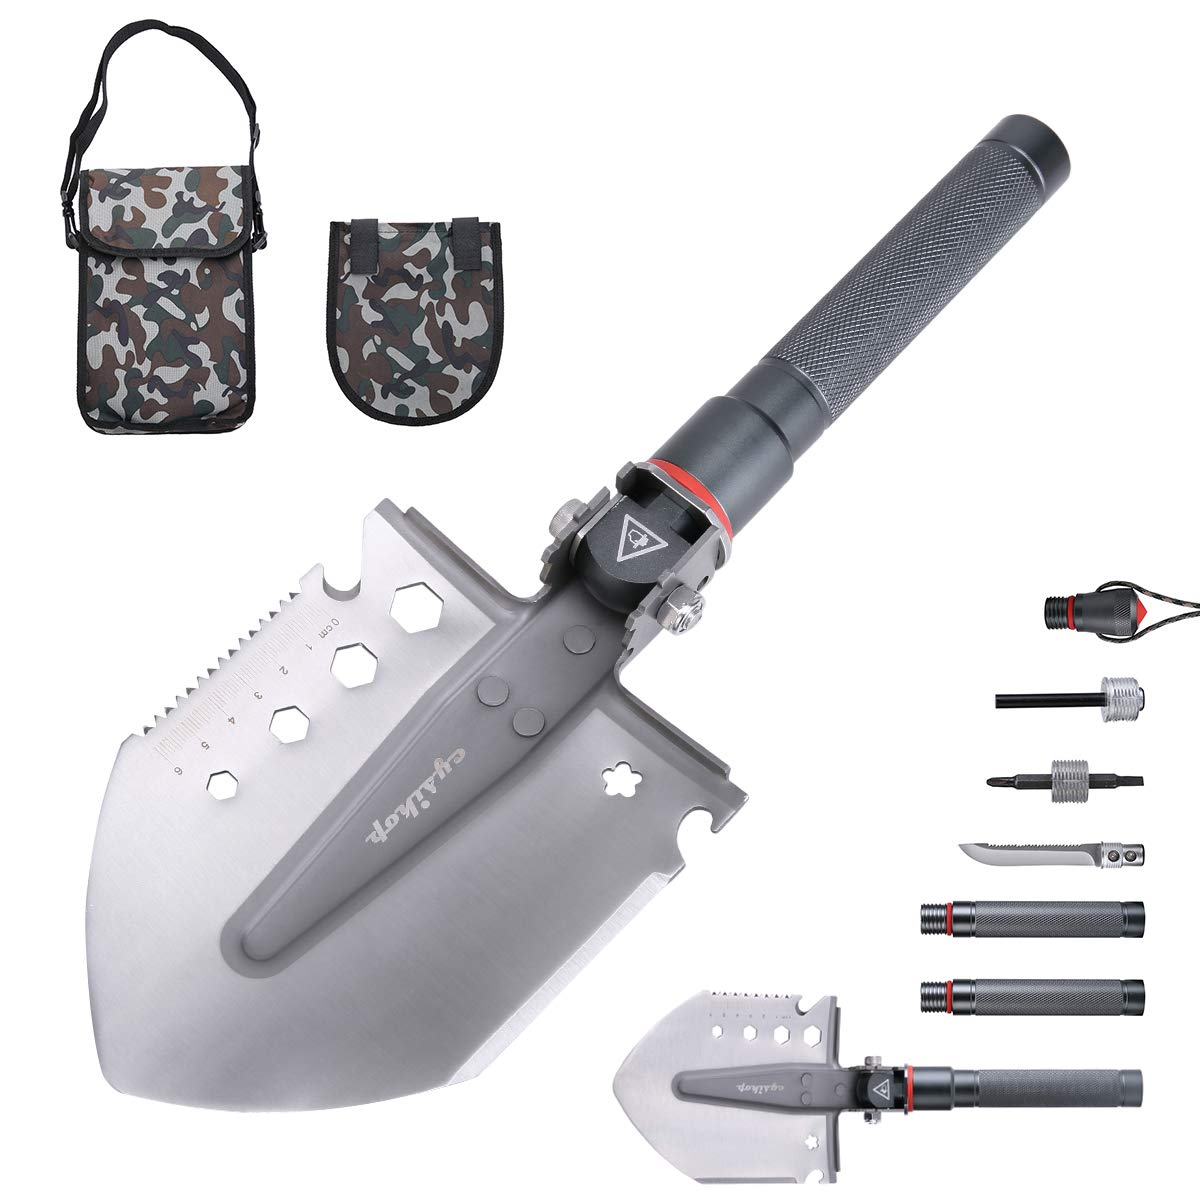 Cysikop Portable Camping Survival Shovel Entrenching Tool with Carrying Pouch Metal Handle for Camping, Hiking, Backpacking,Gardening,Fishing,Car Emergency etc.